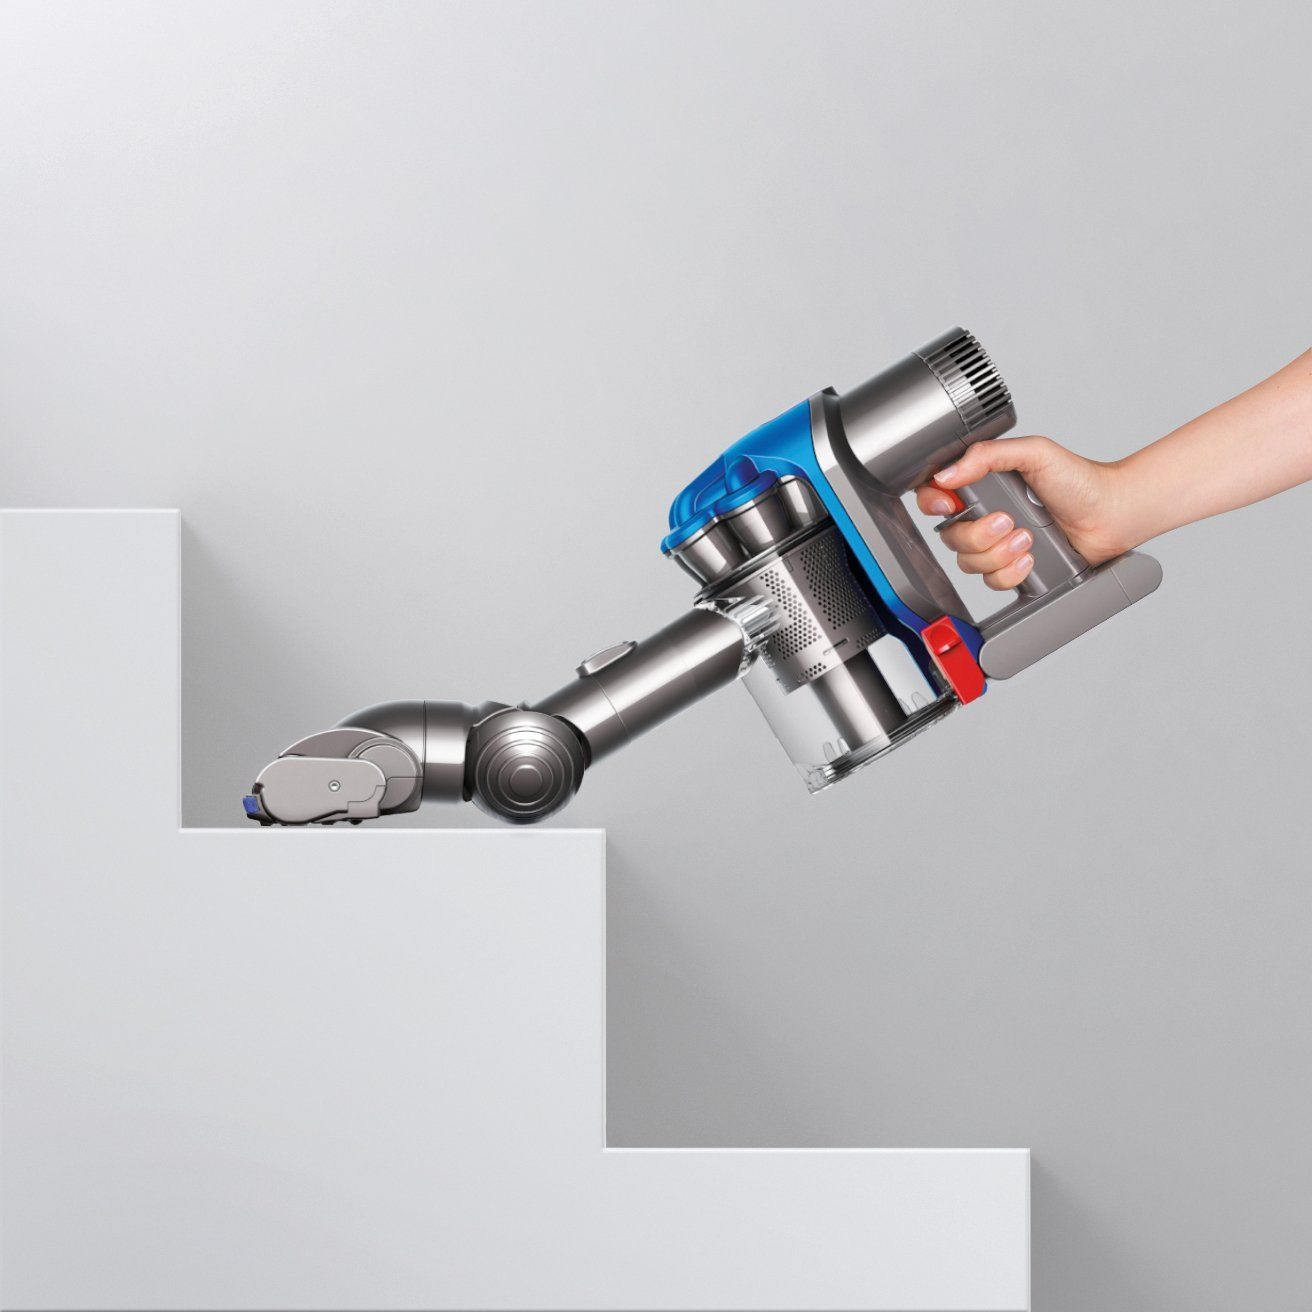 Continue reading for a great review of Dyson DC35 Vacuum Cleaner